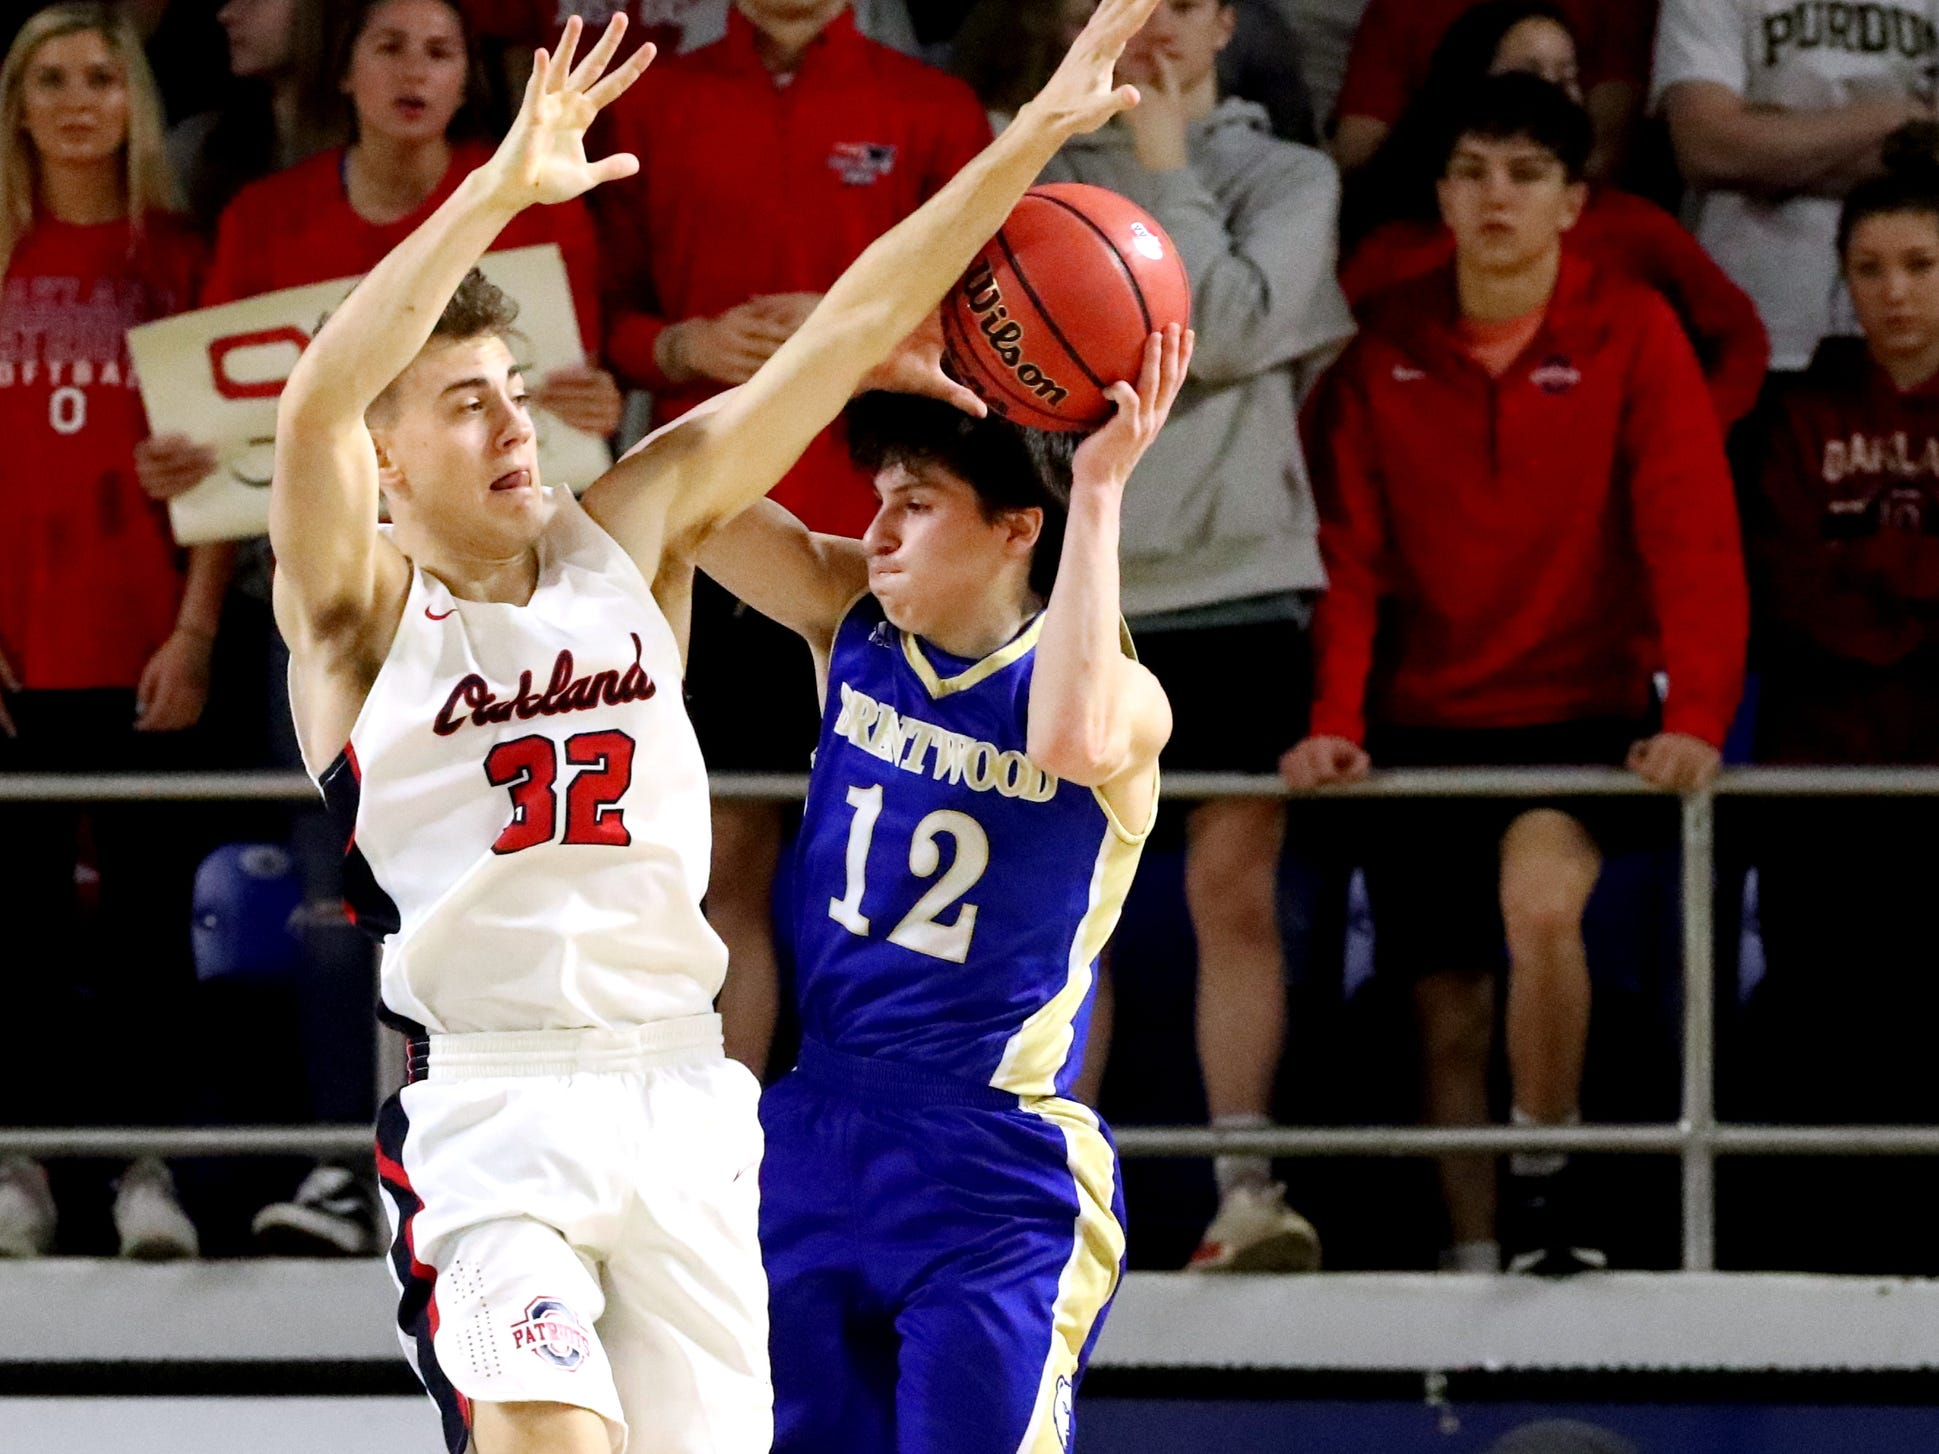 Brentwood's Preston Moore (12) shoots the ball as Oakland's Carter Baughn (32) guards him during the quarterfinal round of the TSSAA Class AAA Boys State Tournament, on Thursday, March 14, 2019, at Murphy Center in Murfreesboro, Tenn.